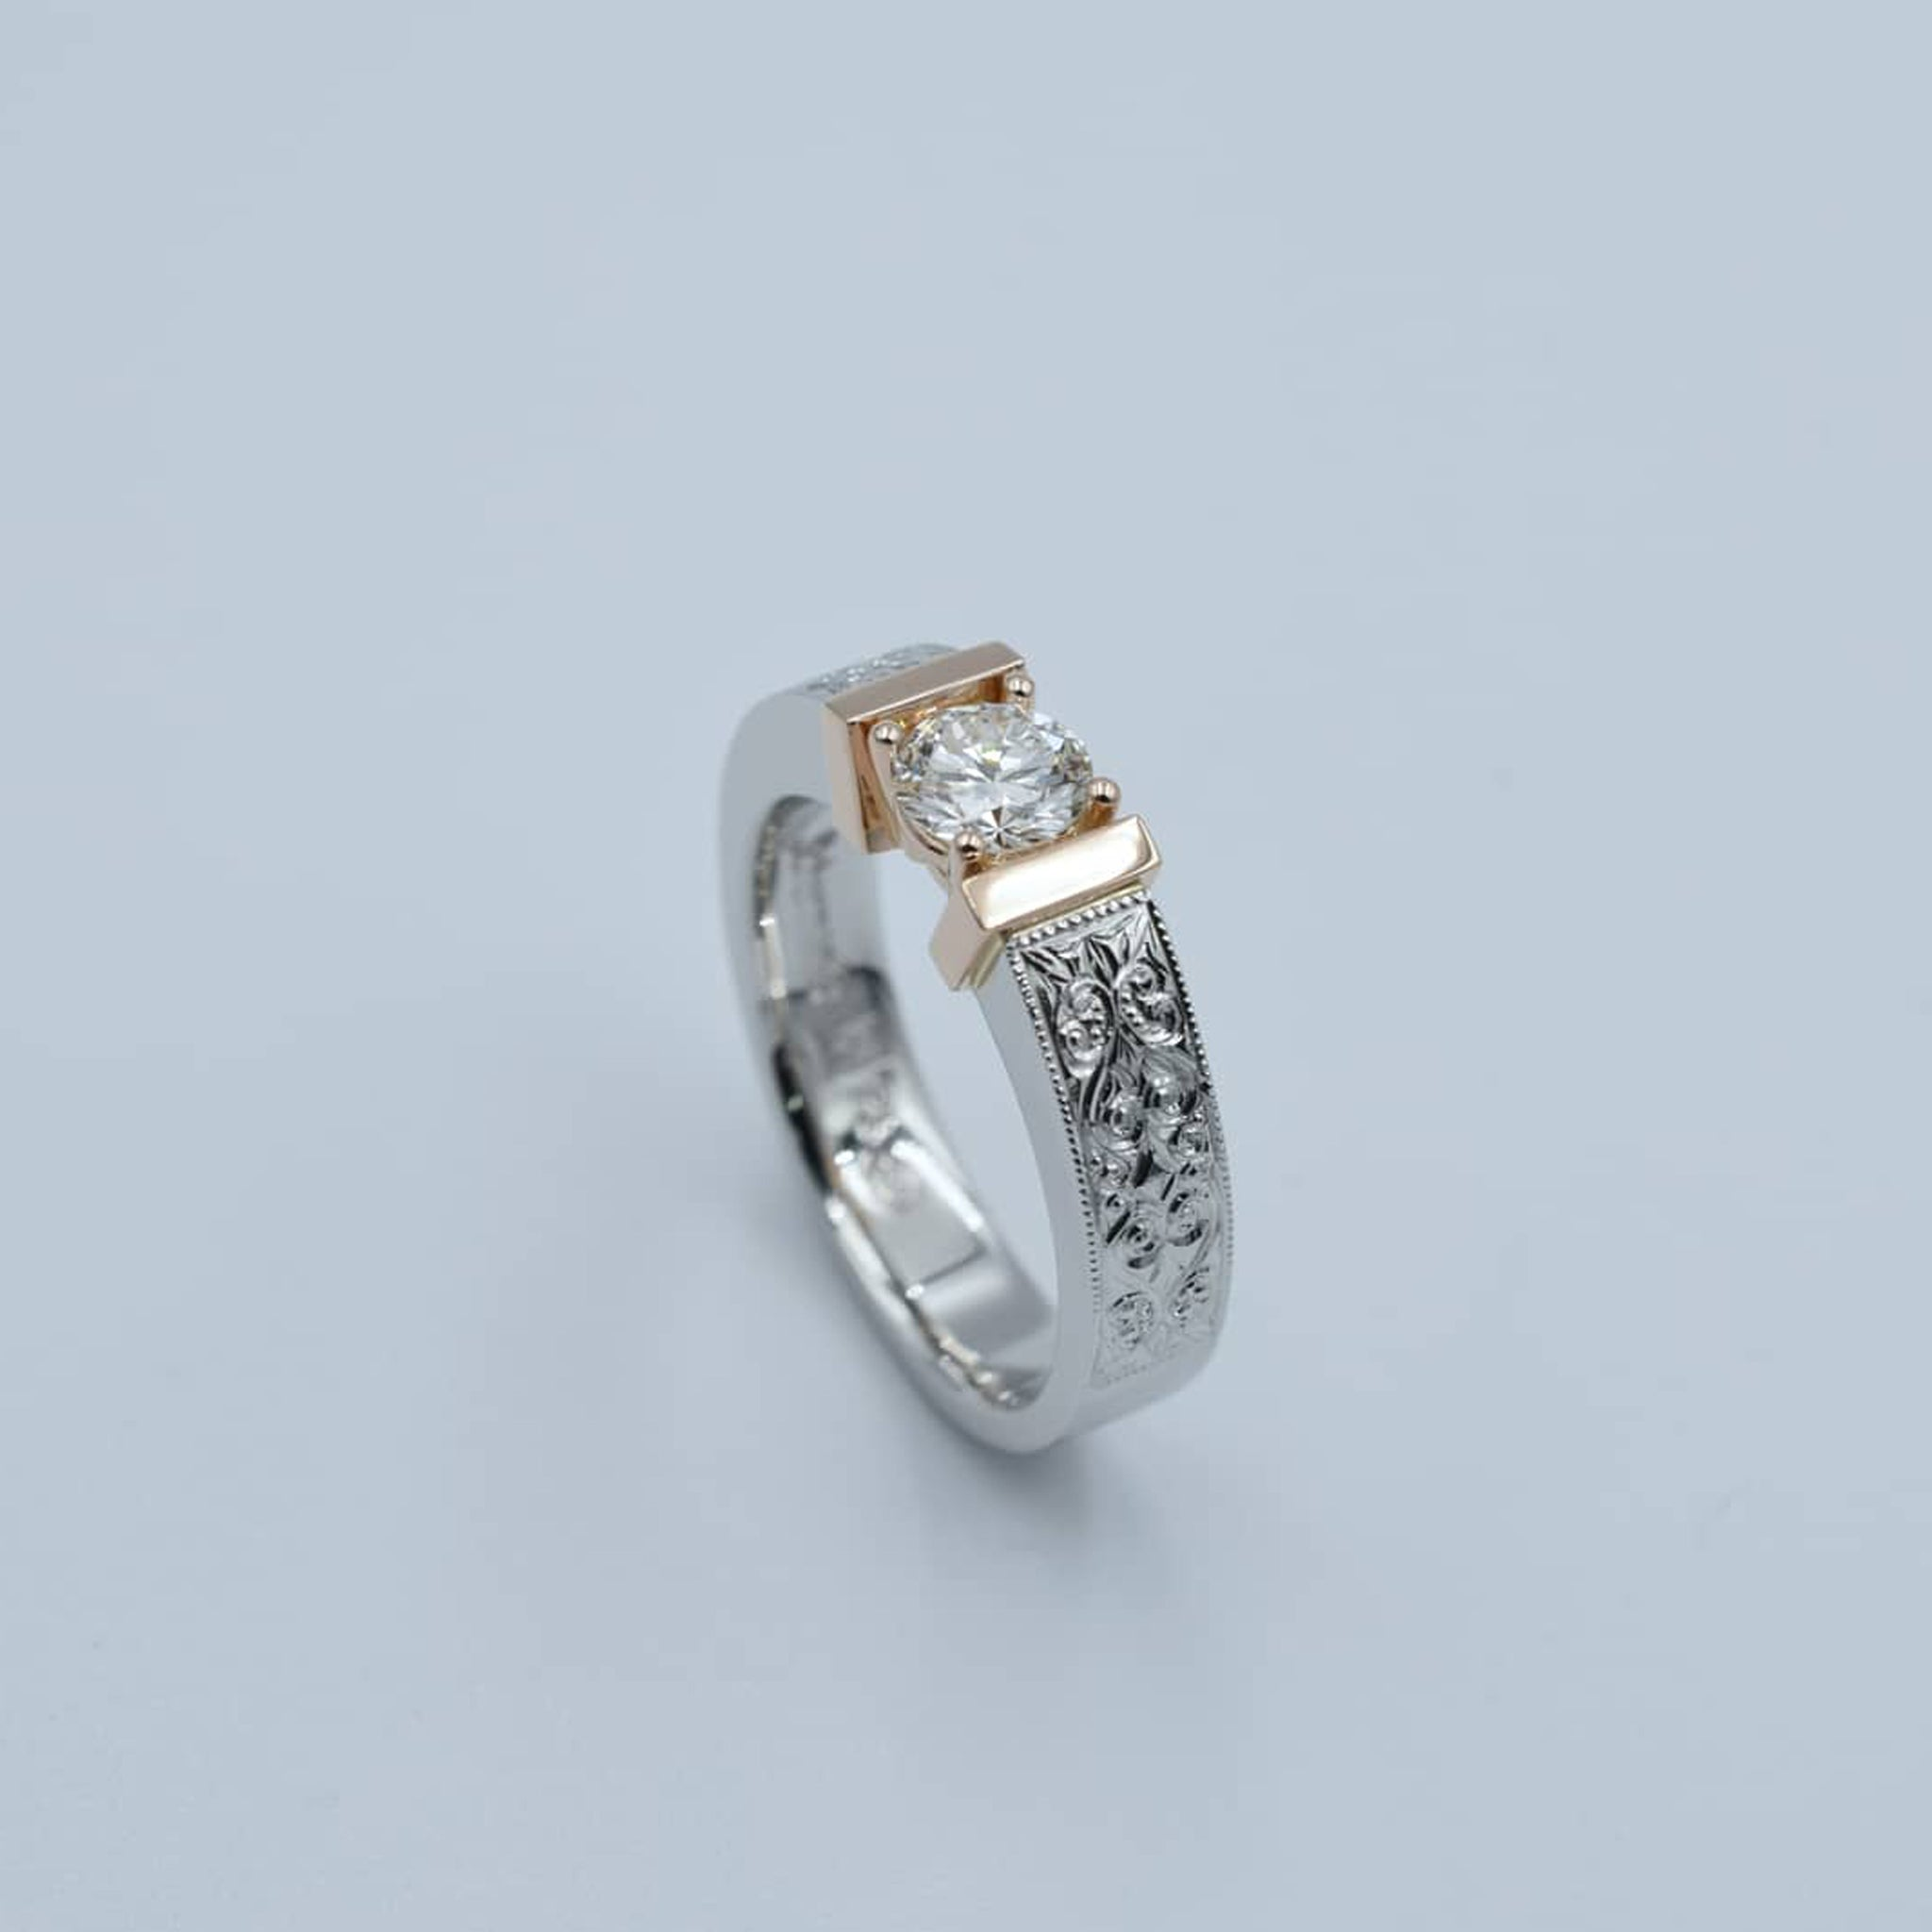 Platinum & 18K rose gold diamond solitaire with fine hand-engraved side detail